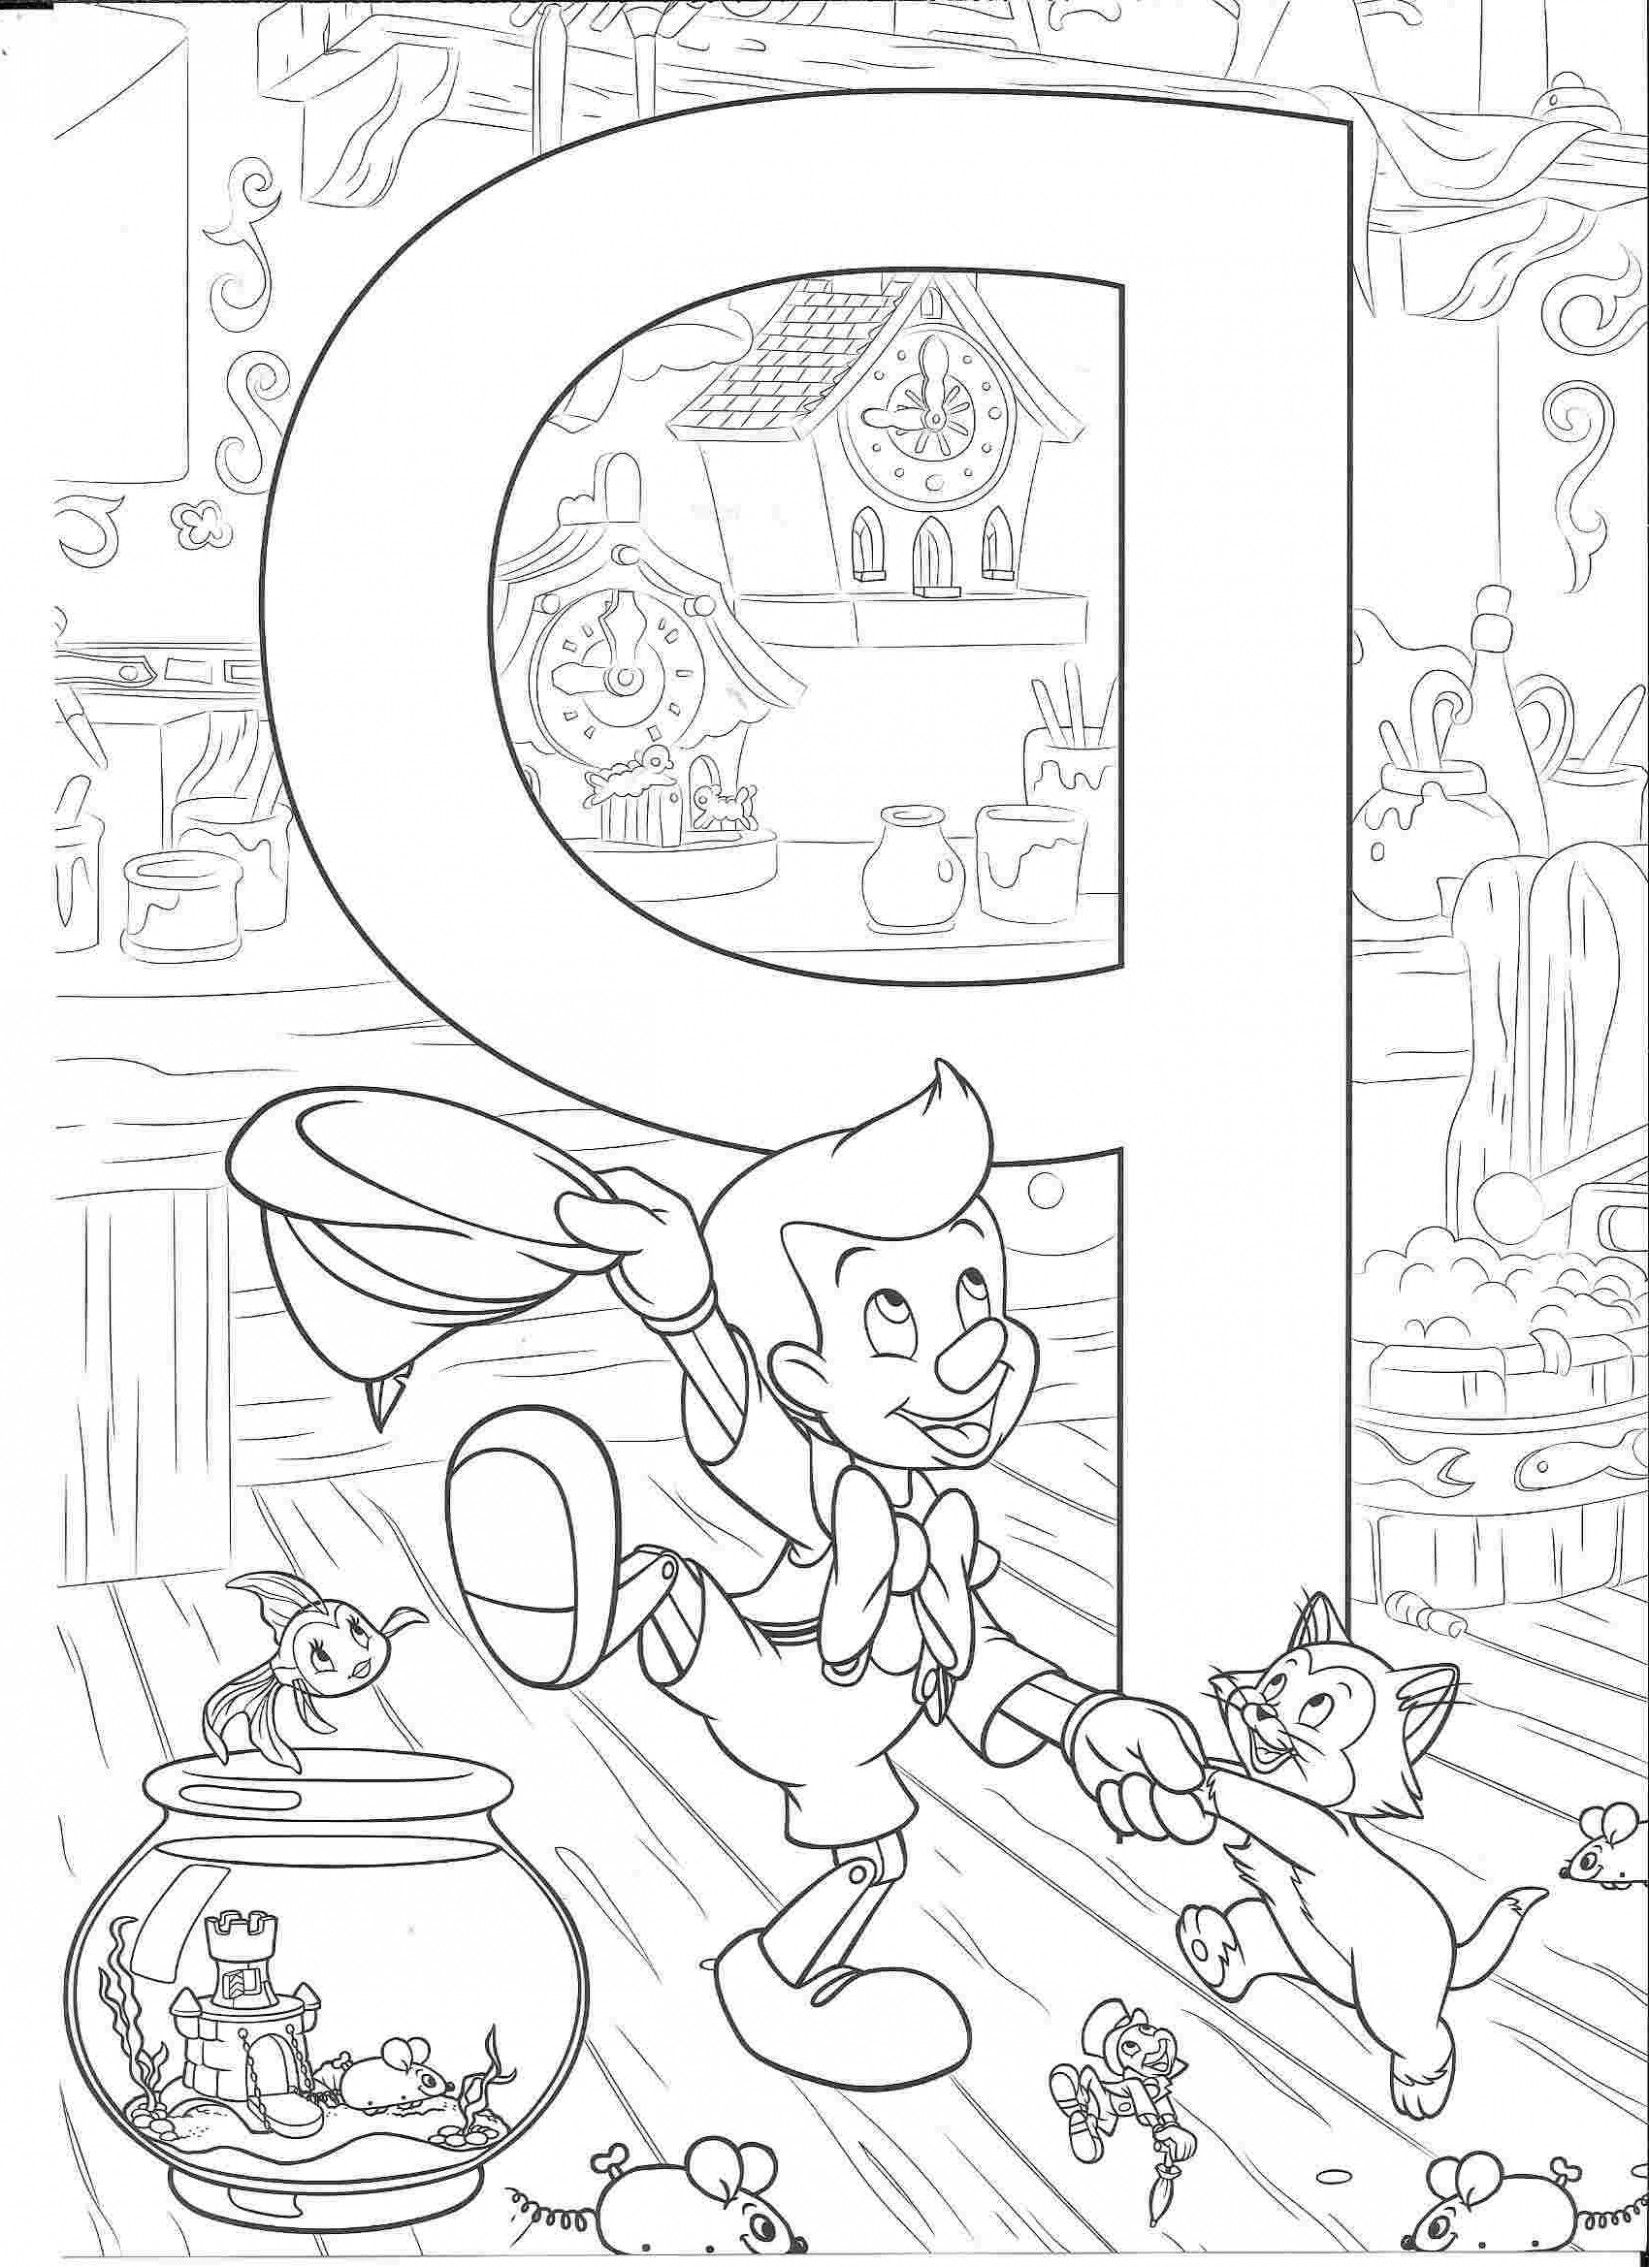 Seven Things About Easy Peasy And Fun Alphabet Coloring Pages You Have To Experience It Yoursel Abc Coloring Pages Disney Coloring Sheets Disney Coloring Pages [ 2267 x 1649 Pixel ]